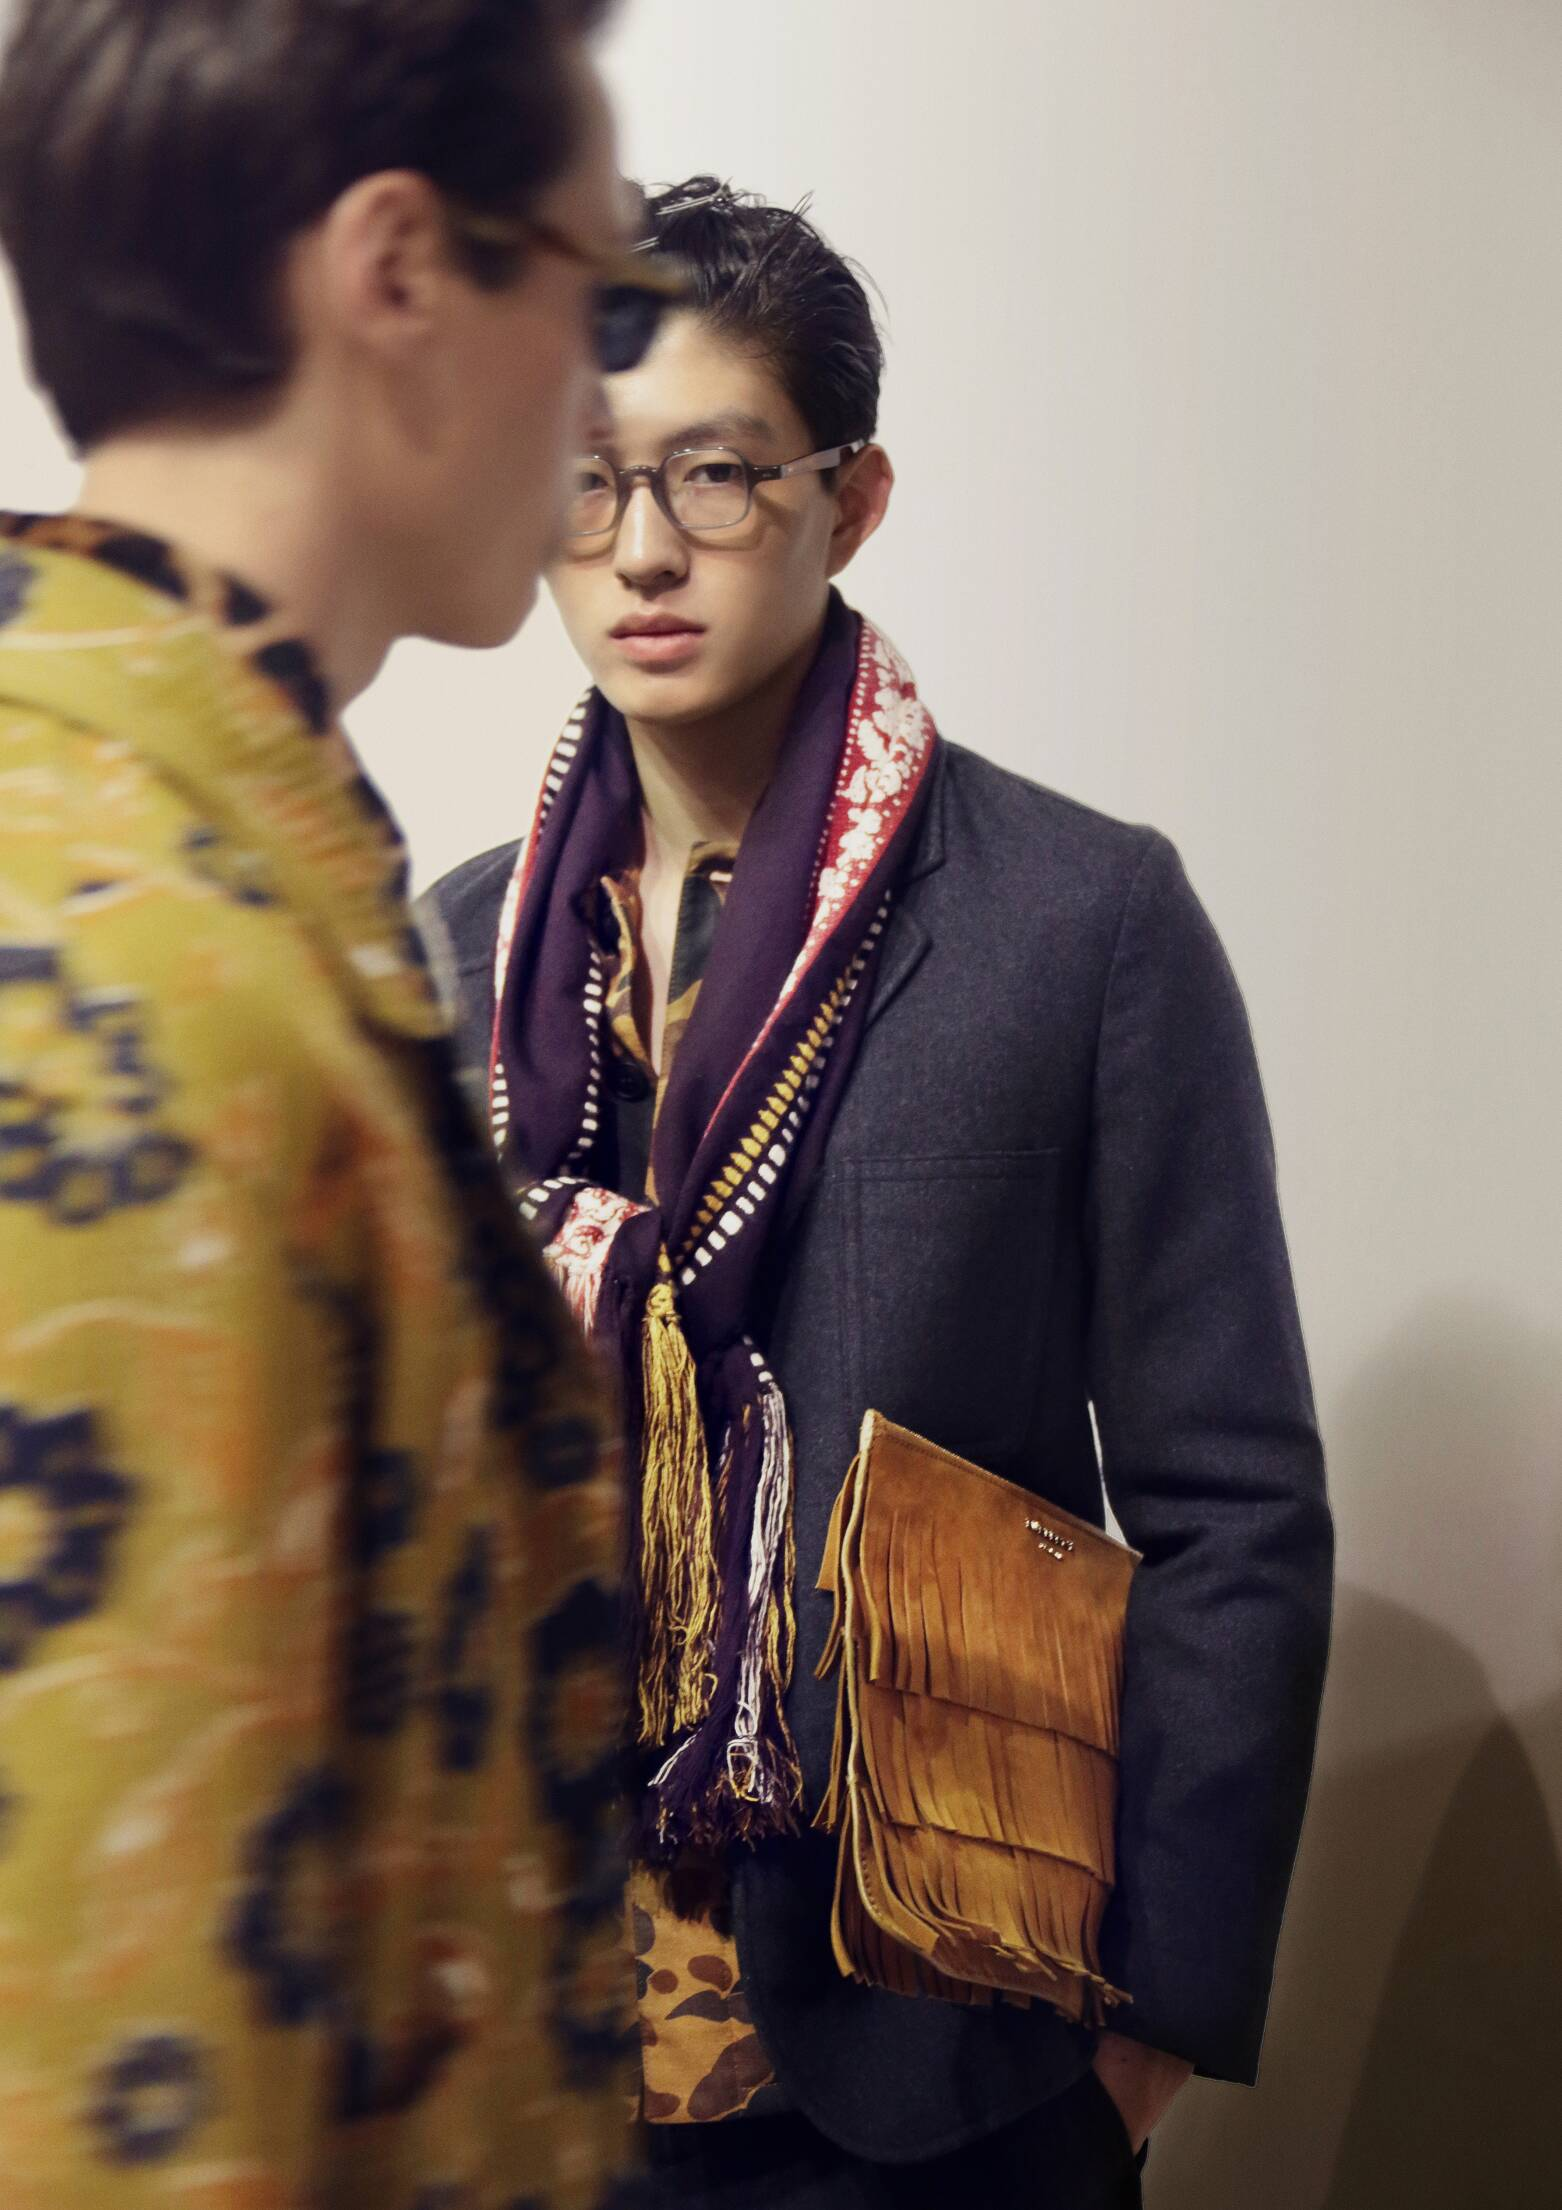 Backstage Burberry Prorsum Model